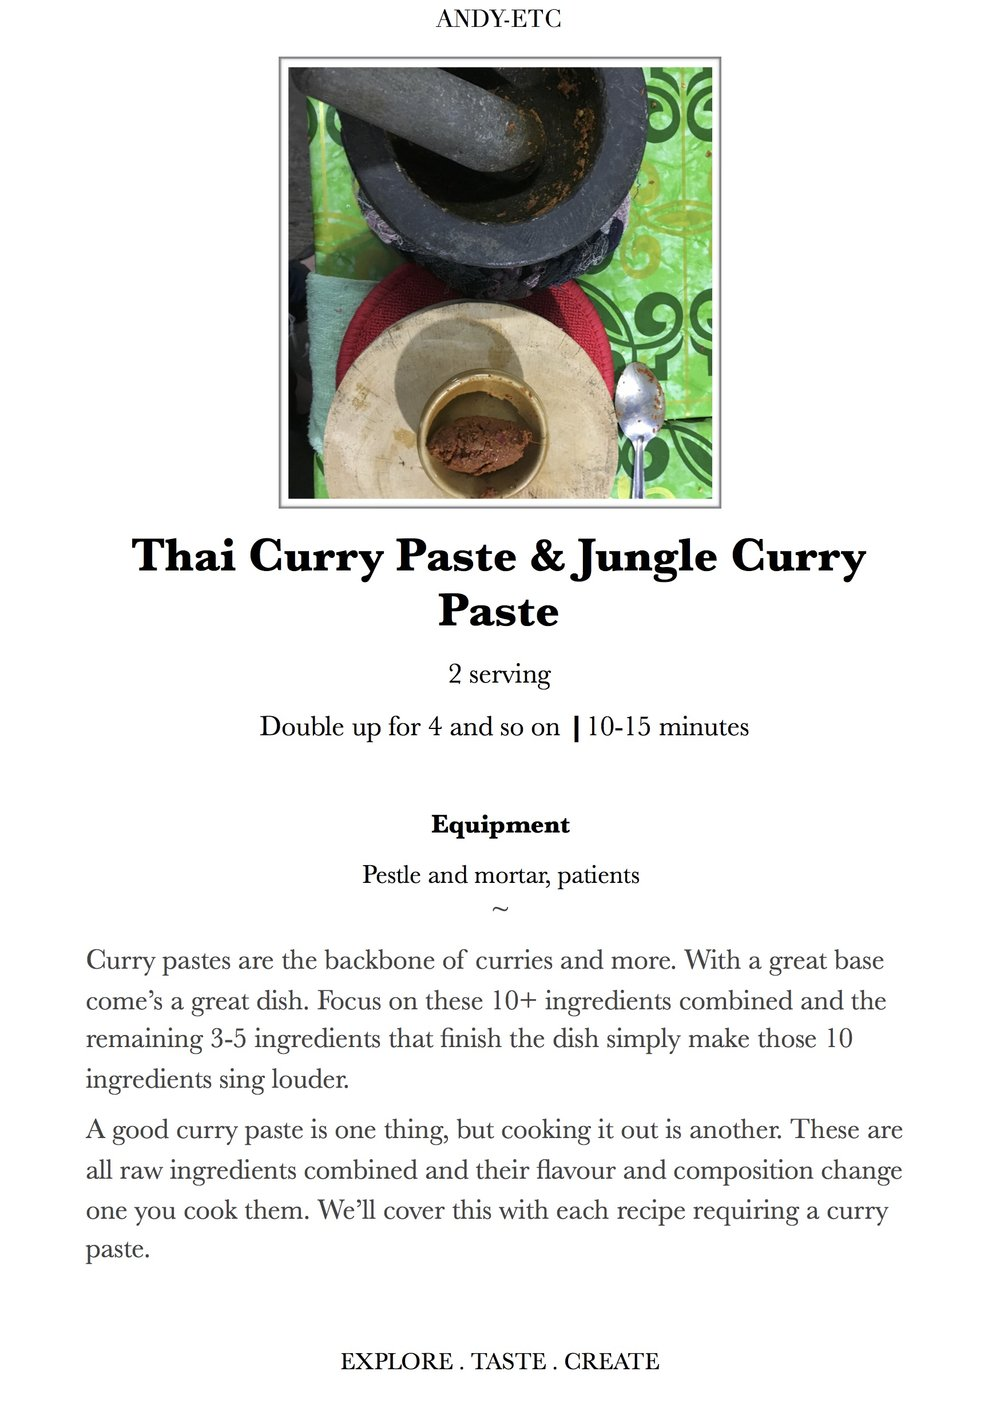 Thai Curry Paste & Jungle Curry Paste Andy ETC  .jpg